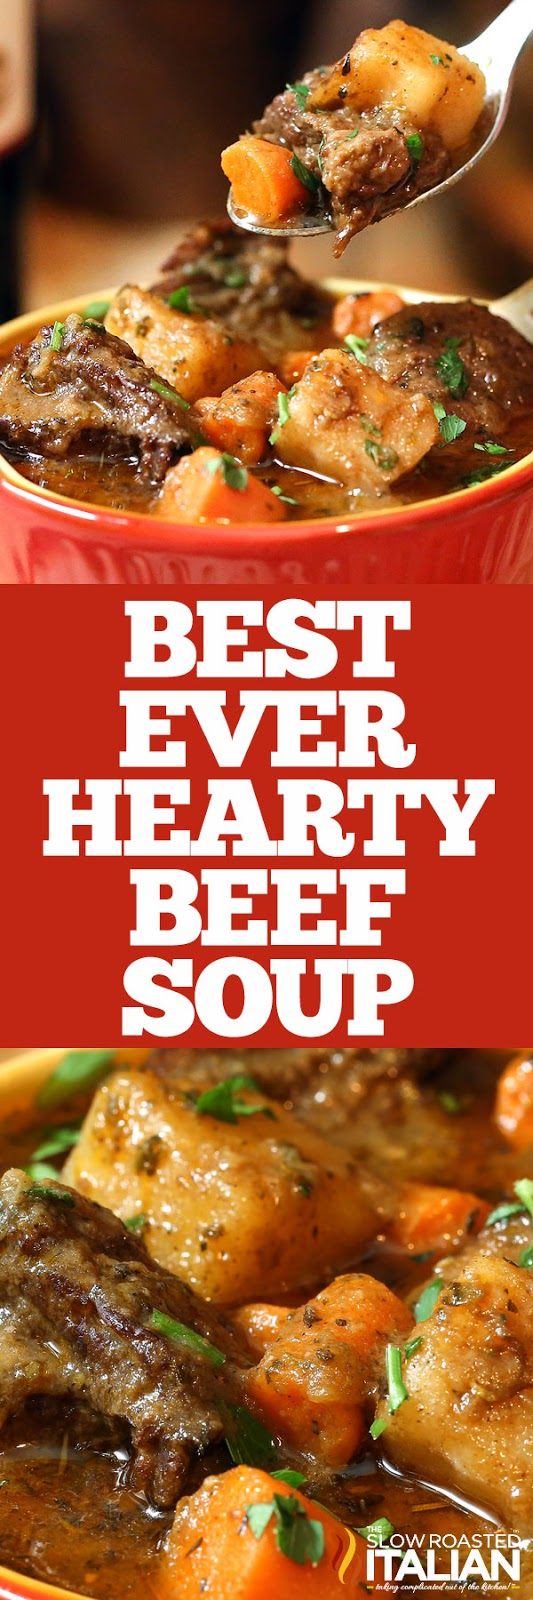 titled image (and shown): best ever vegetable beef soup recipe